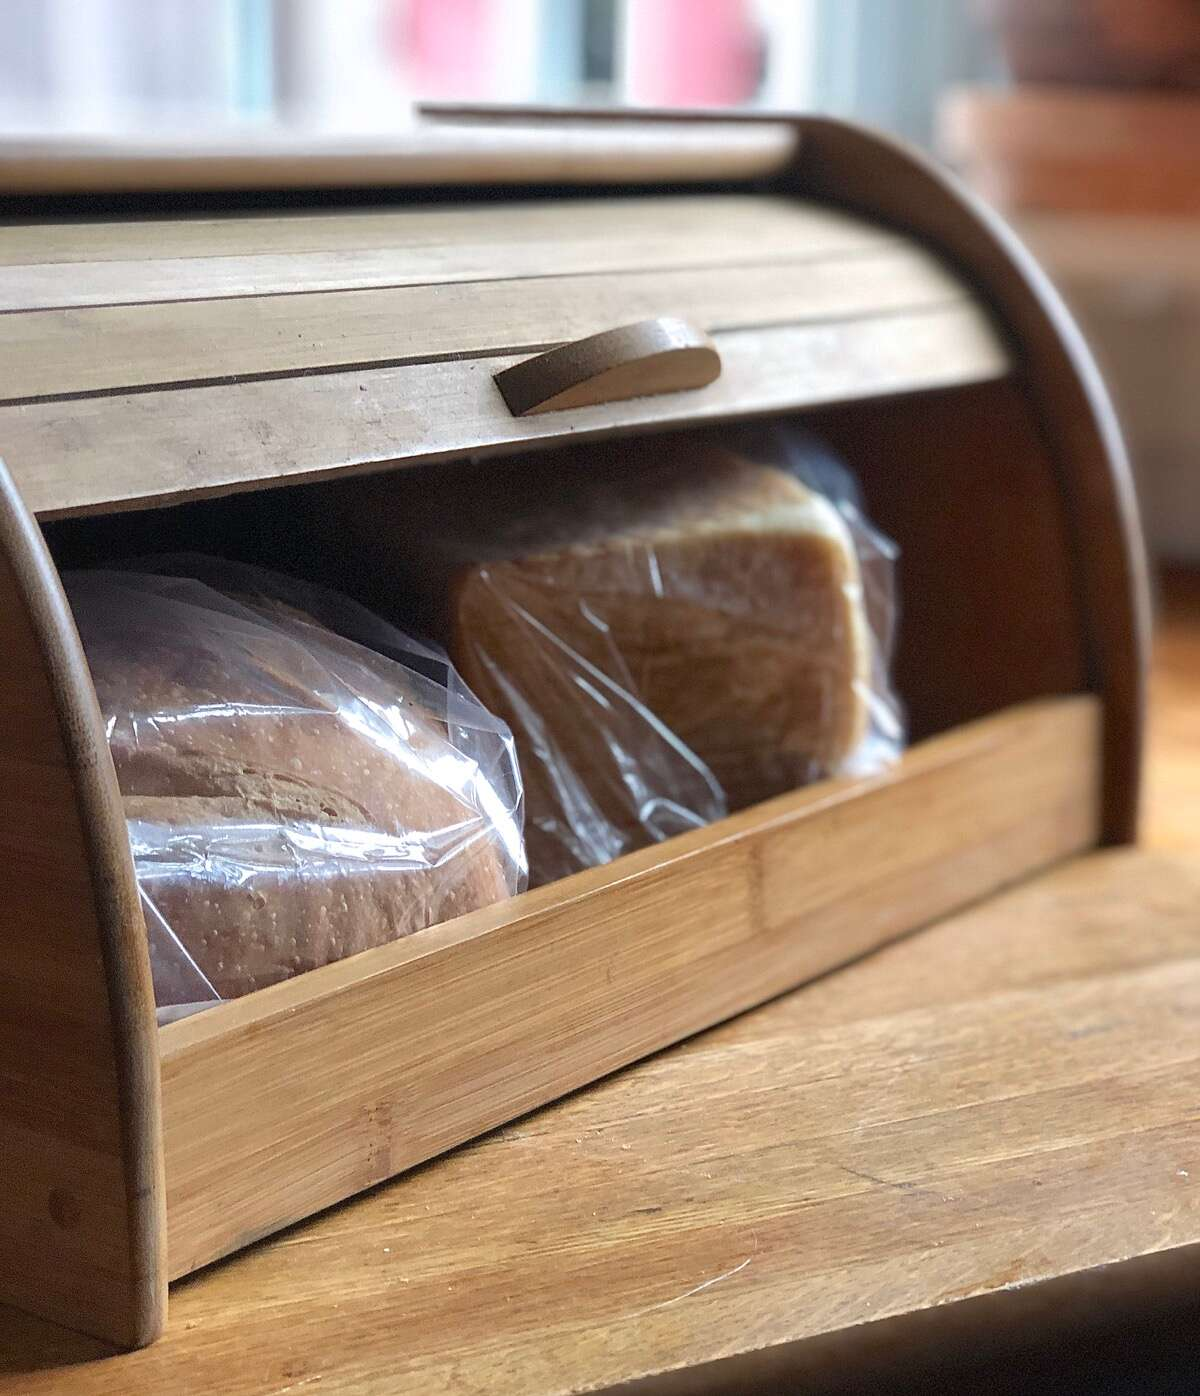 Two loaves of bread stored in a lidded wooden bread box.